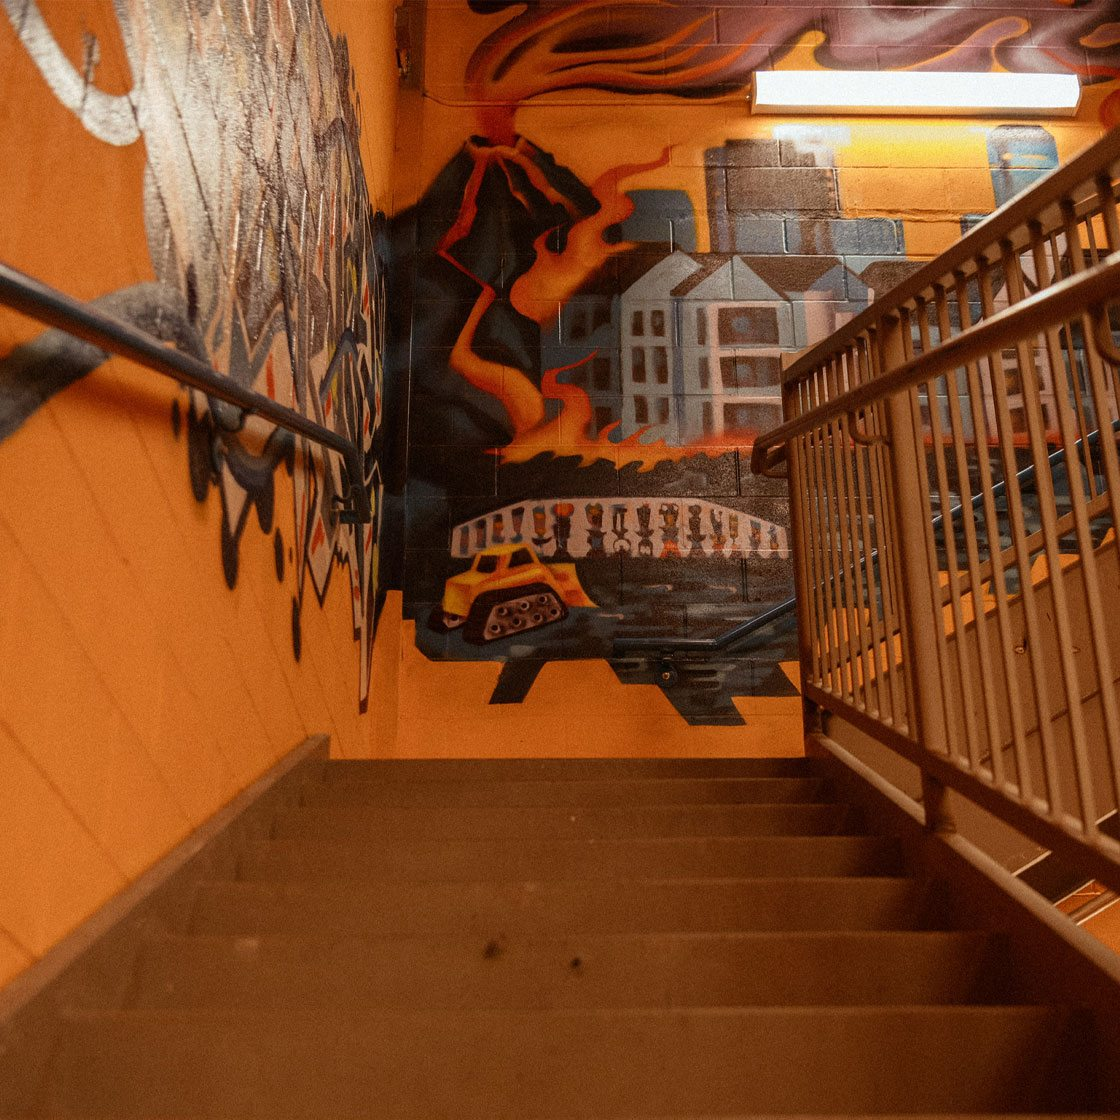 A painted mural in an indoor staircase